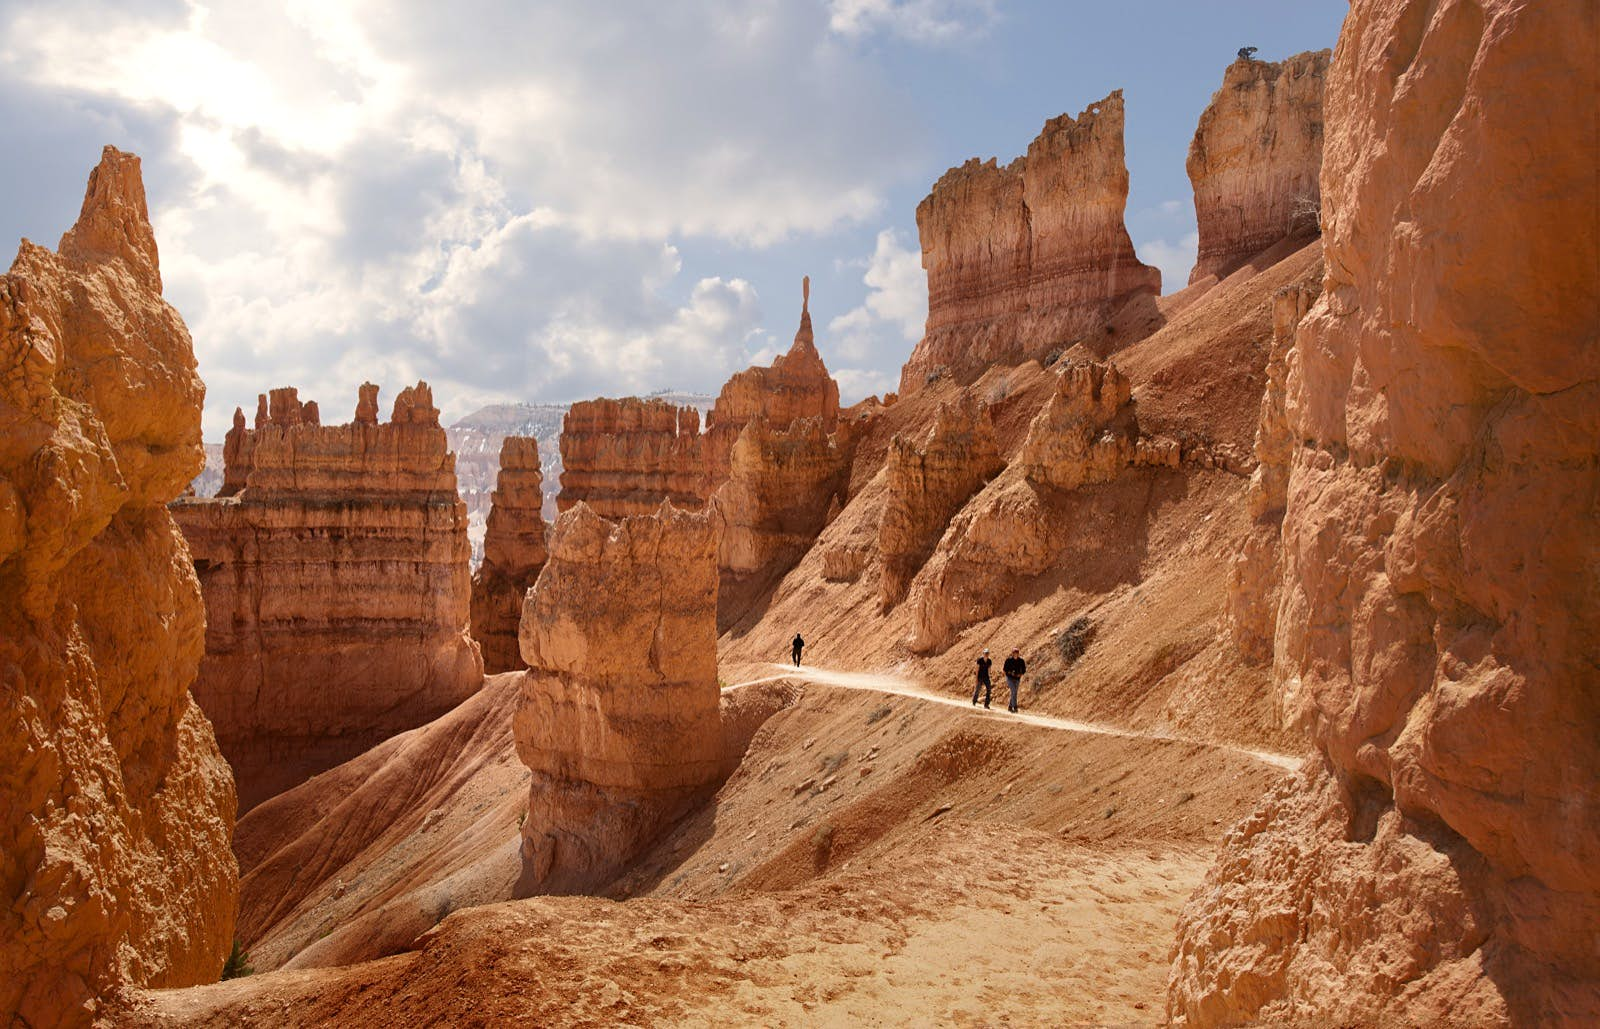 A few people walk in opposite directions through monumental rock formations in the red desert in Bryce Canyon, Utah.